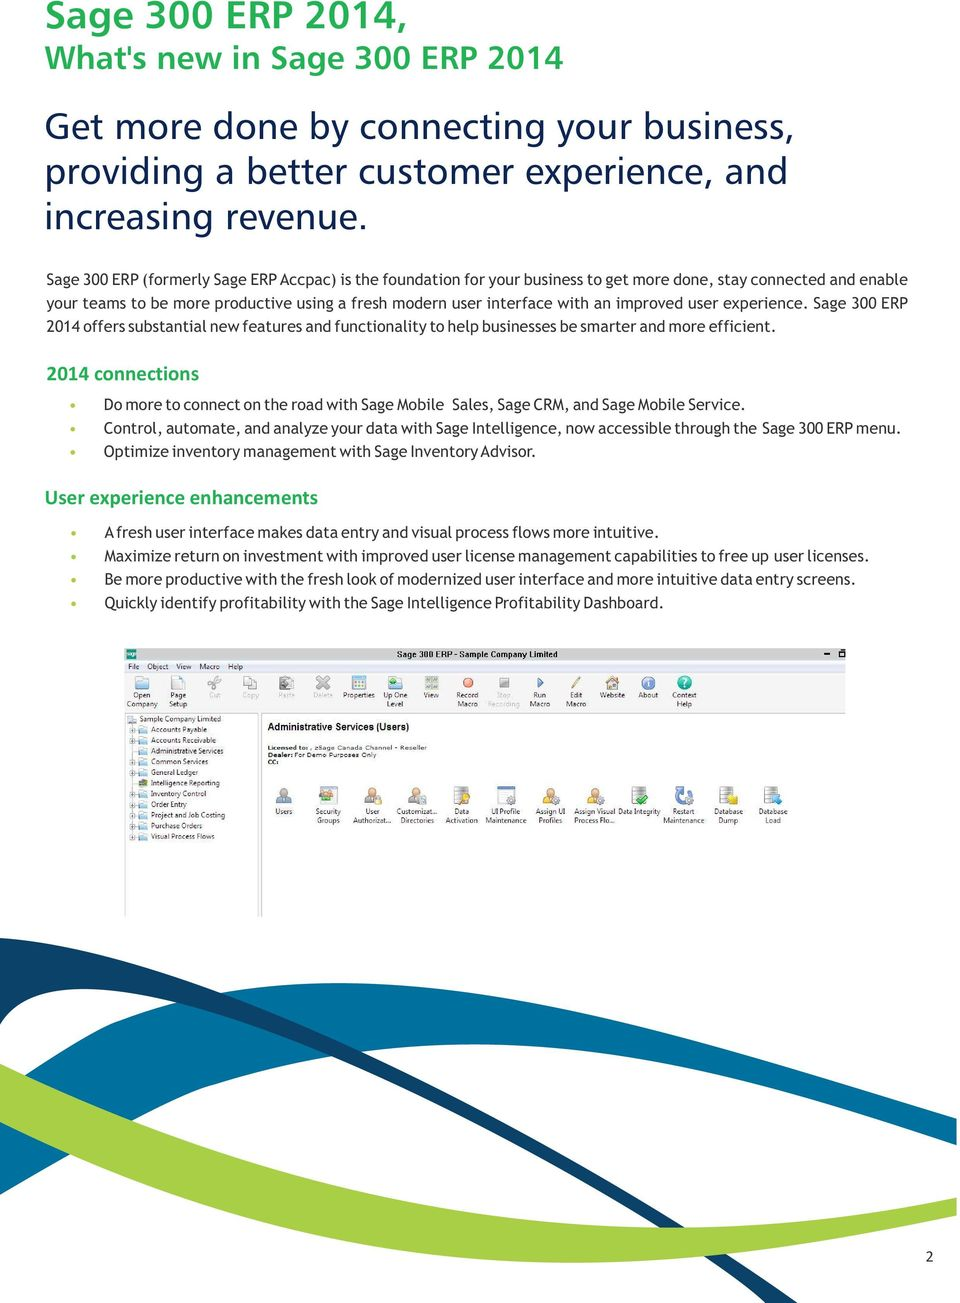 improved user experience. Sage 300 ERP 2014 offers substantial new features and functionality to help businesses be smarter and more efficient.